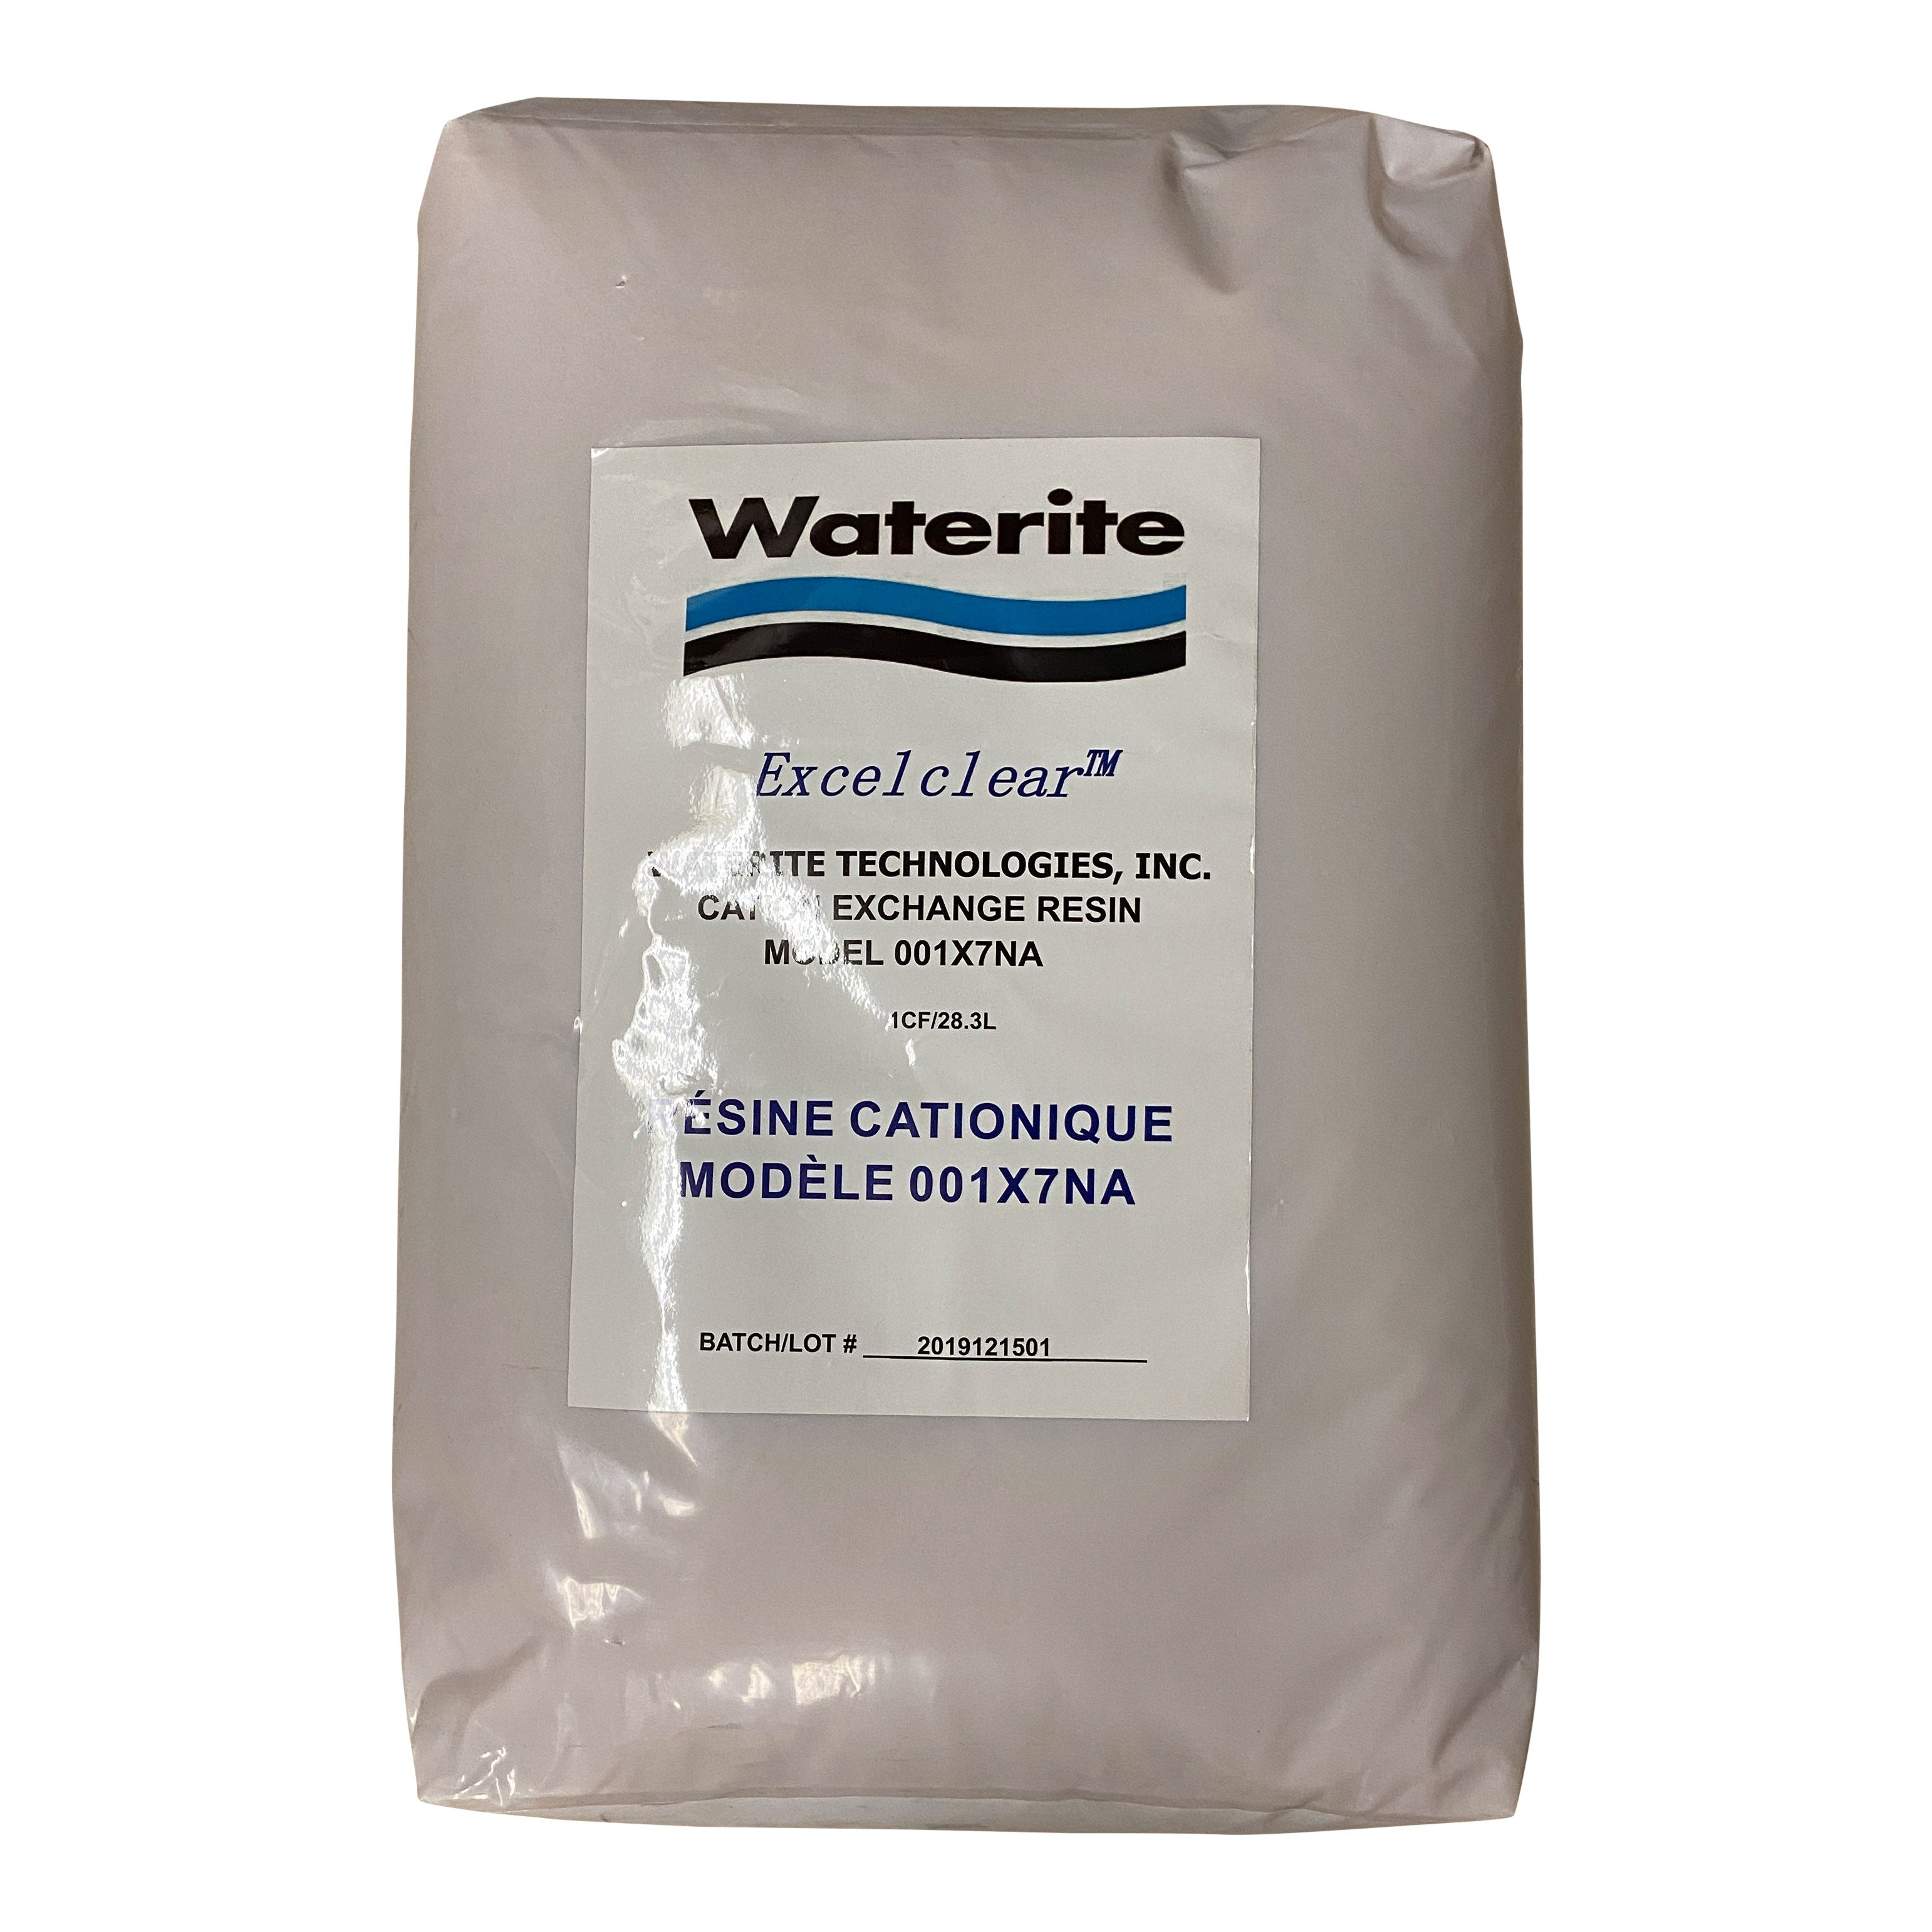 Excelclear Premium Grade Water Softener Media - 1 cubic foot